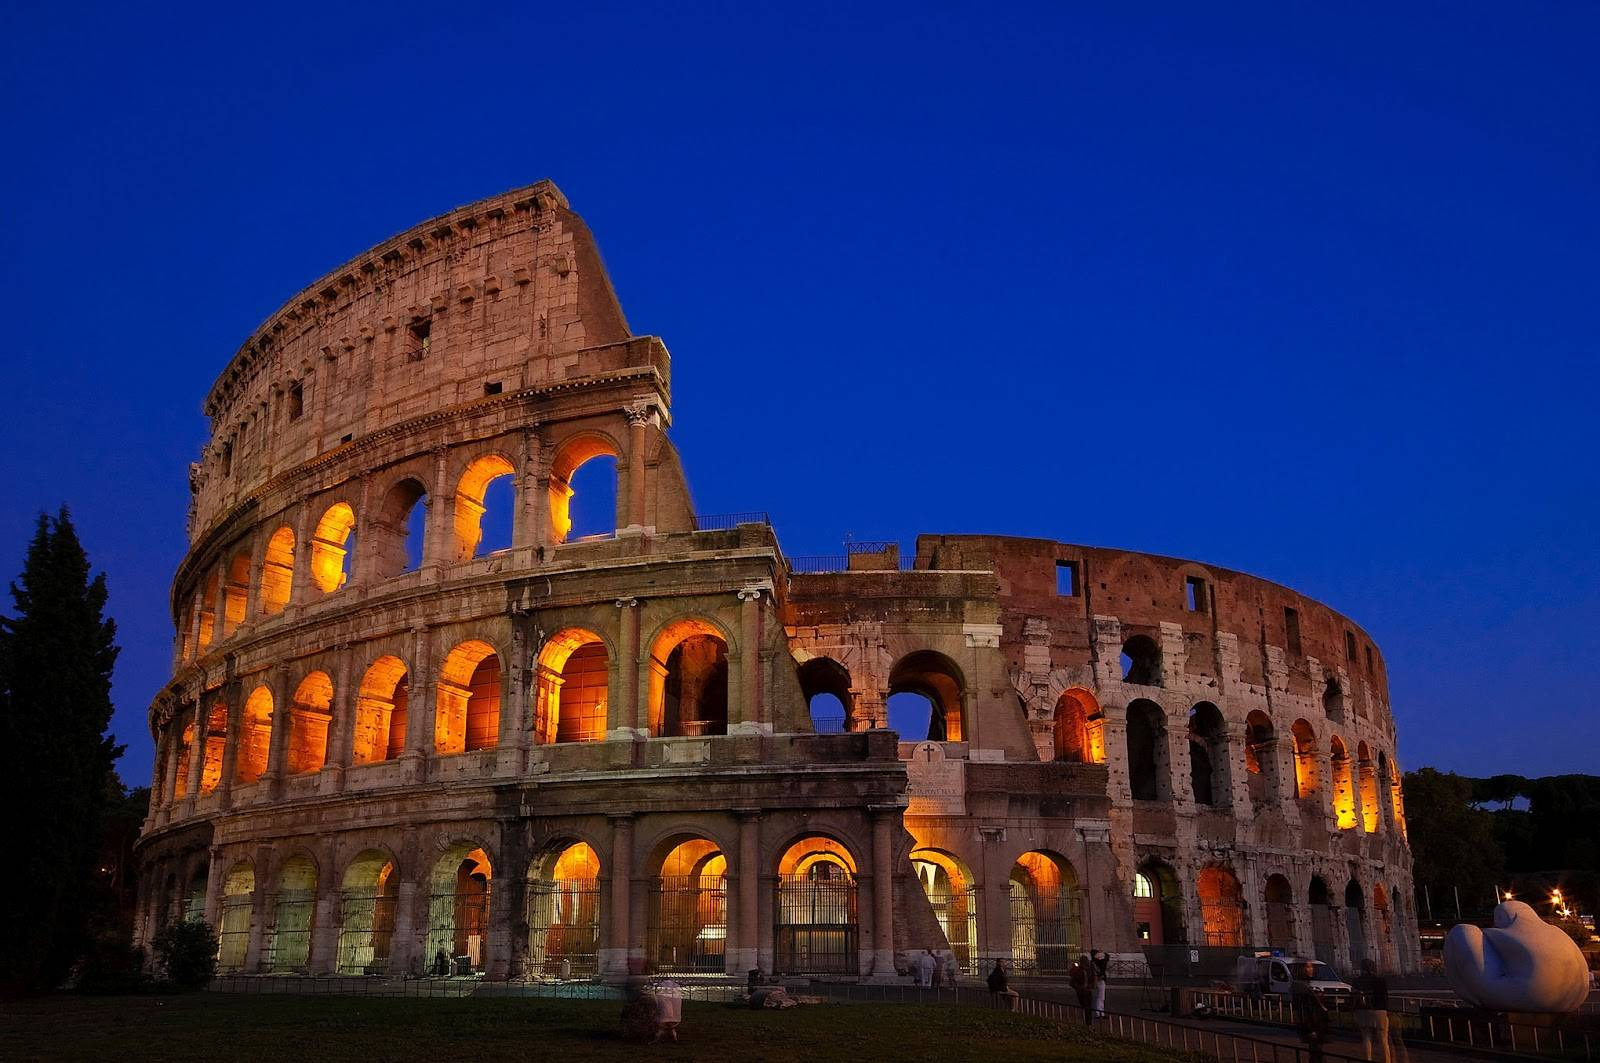 Colosseum wallpapers wallpaper cave for Italy wallpaper